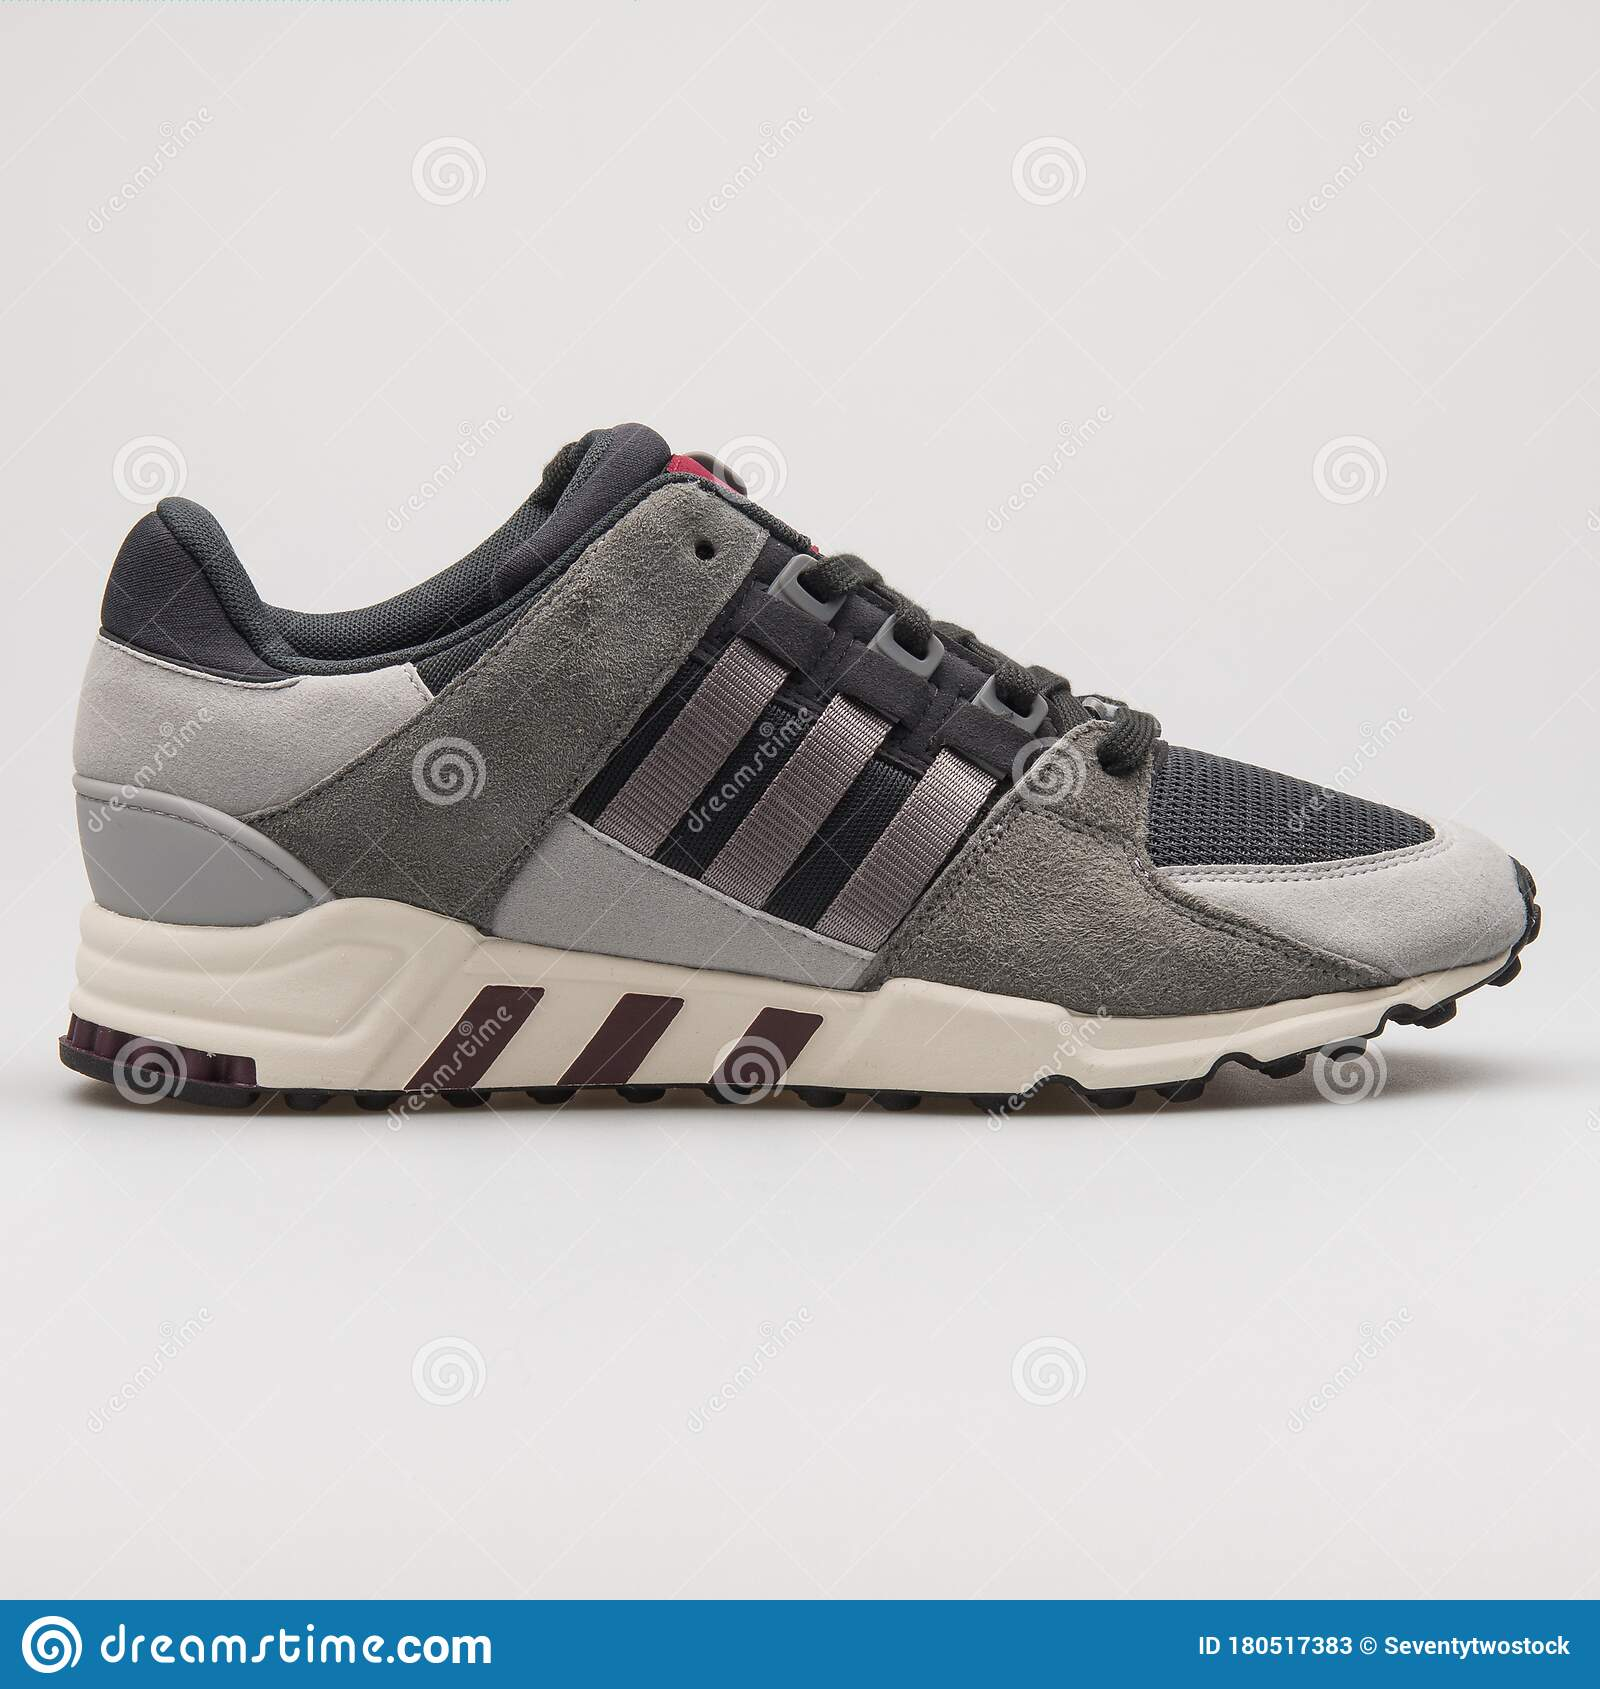 Adidas EQT Support RF Carbon Grey And Black Sneaker Editorial ...